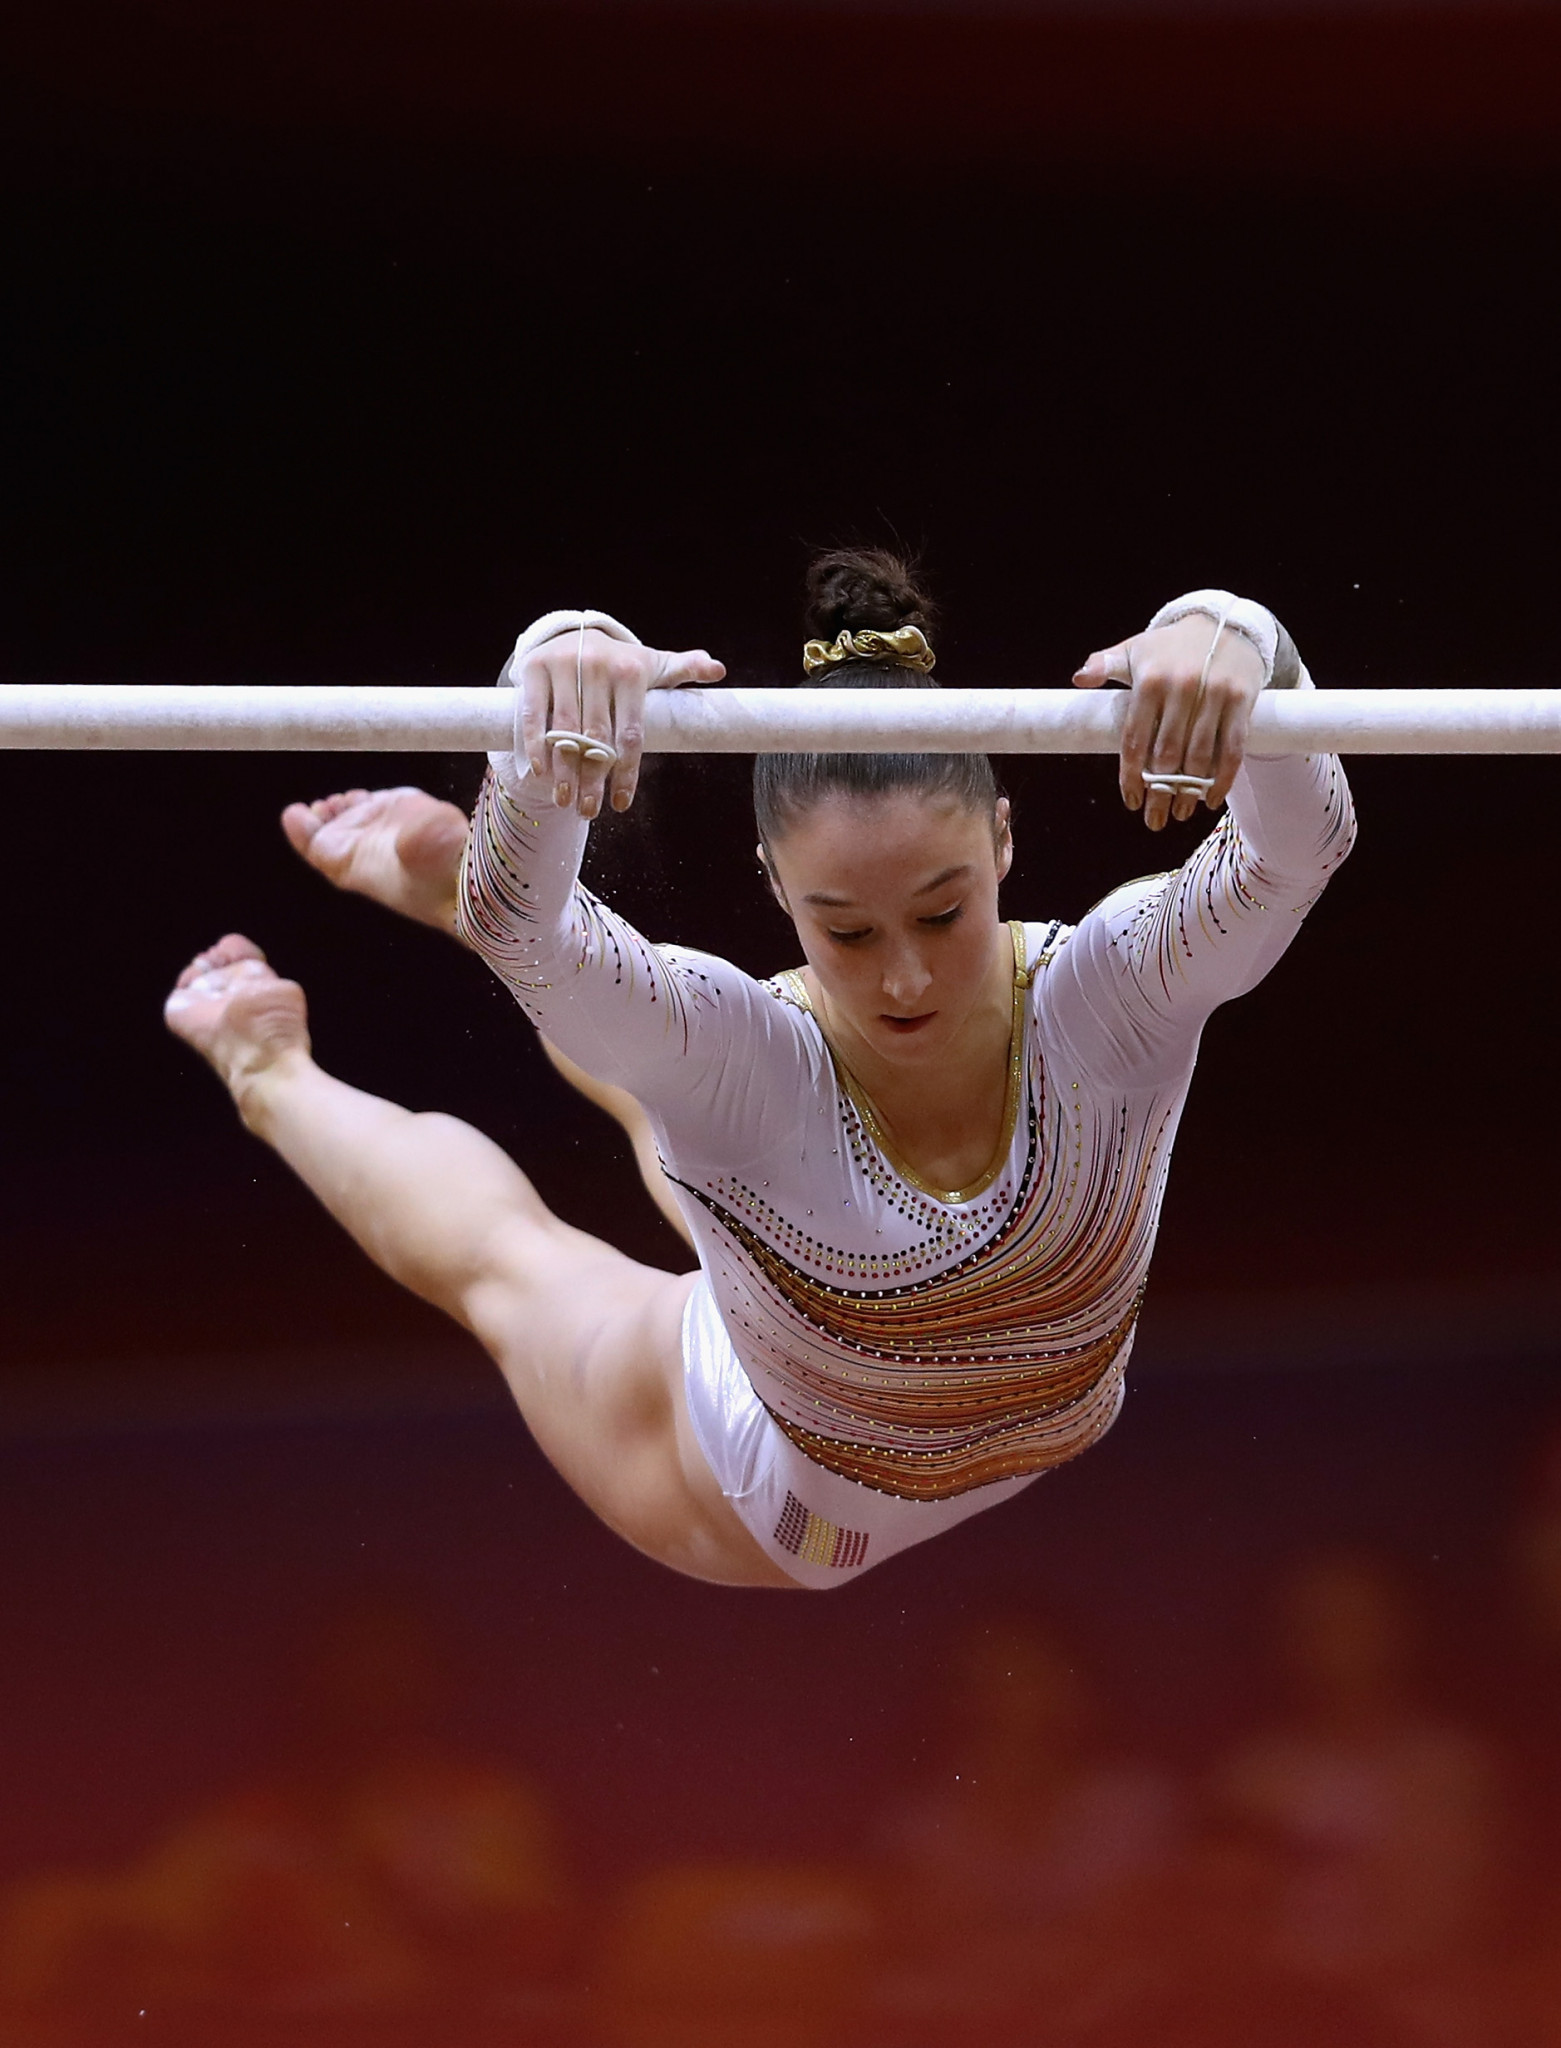 Belgium's Nina Derwael finished second in the uneven bars ©Getty Images